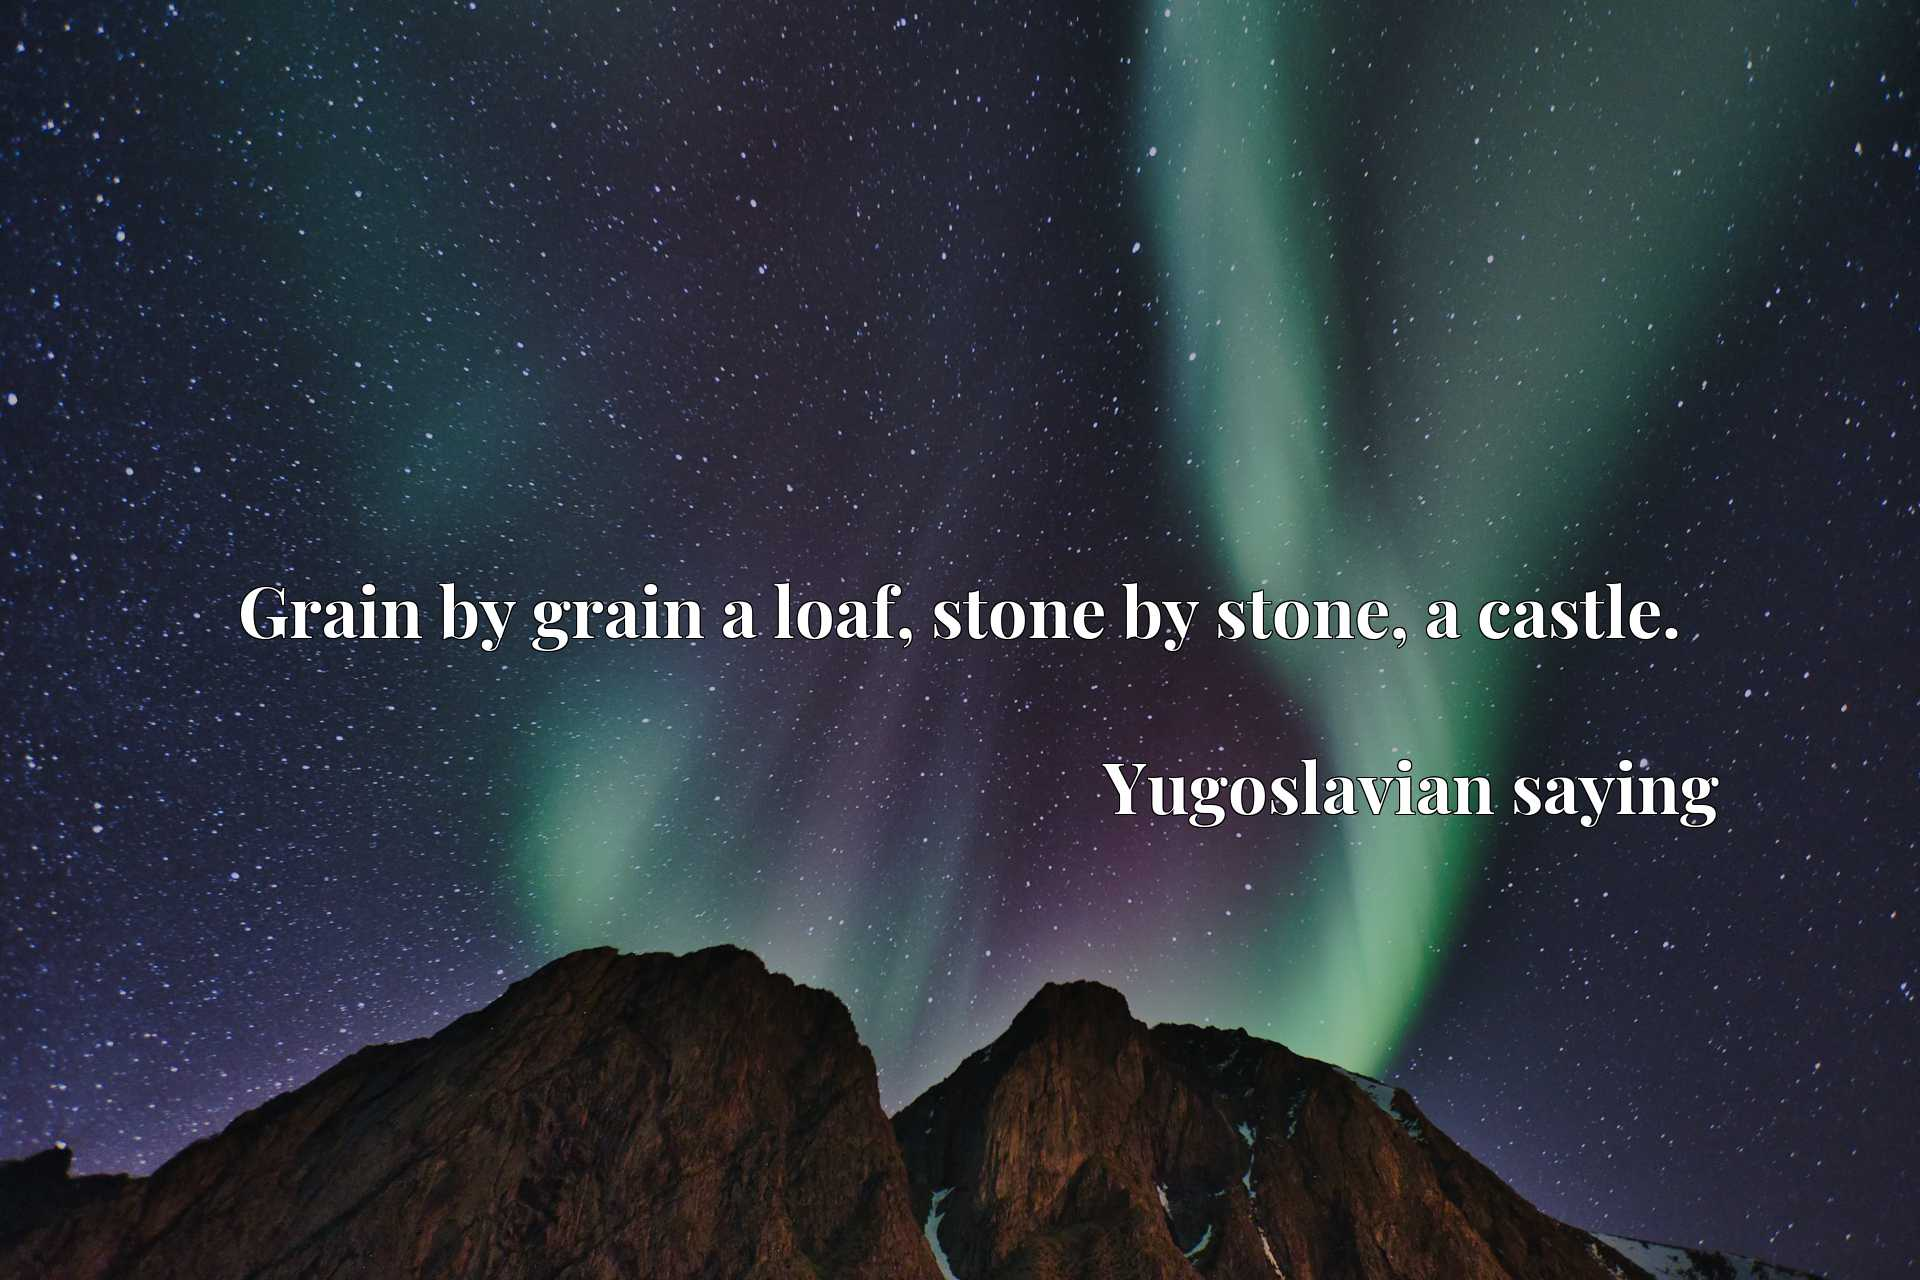 Grain by grain a loaf, stone by stone, a castle.